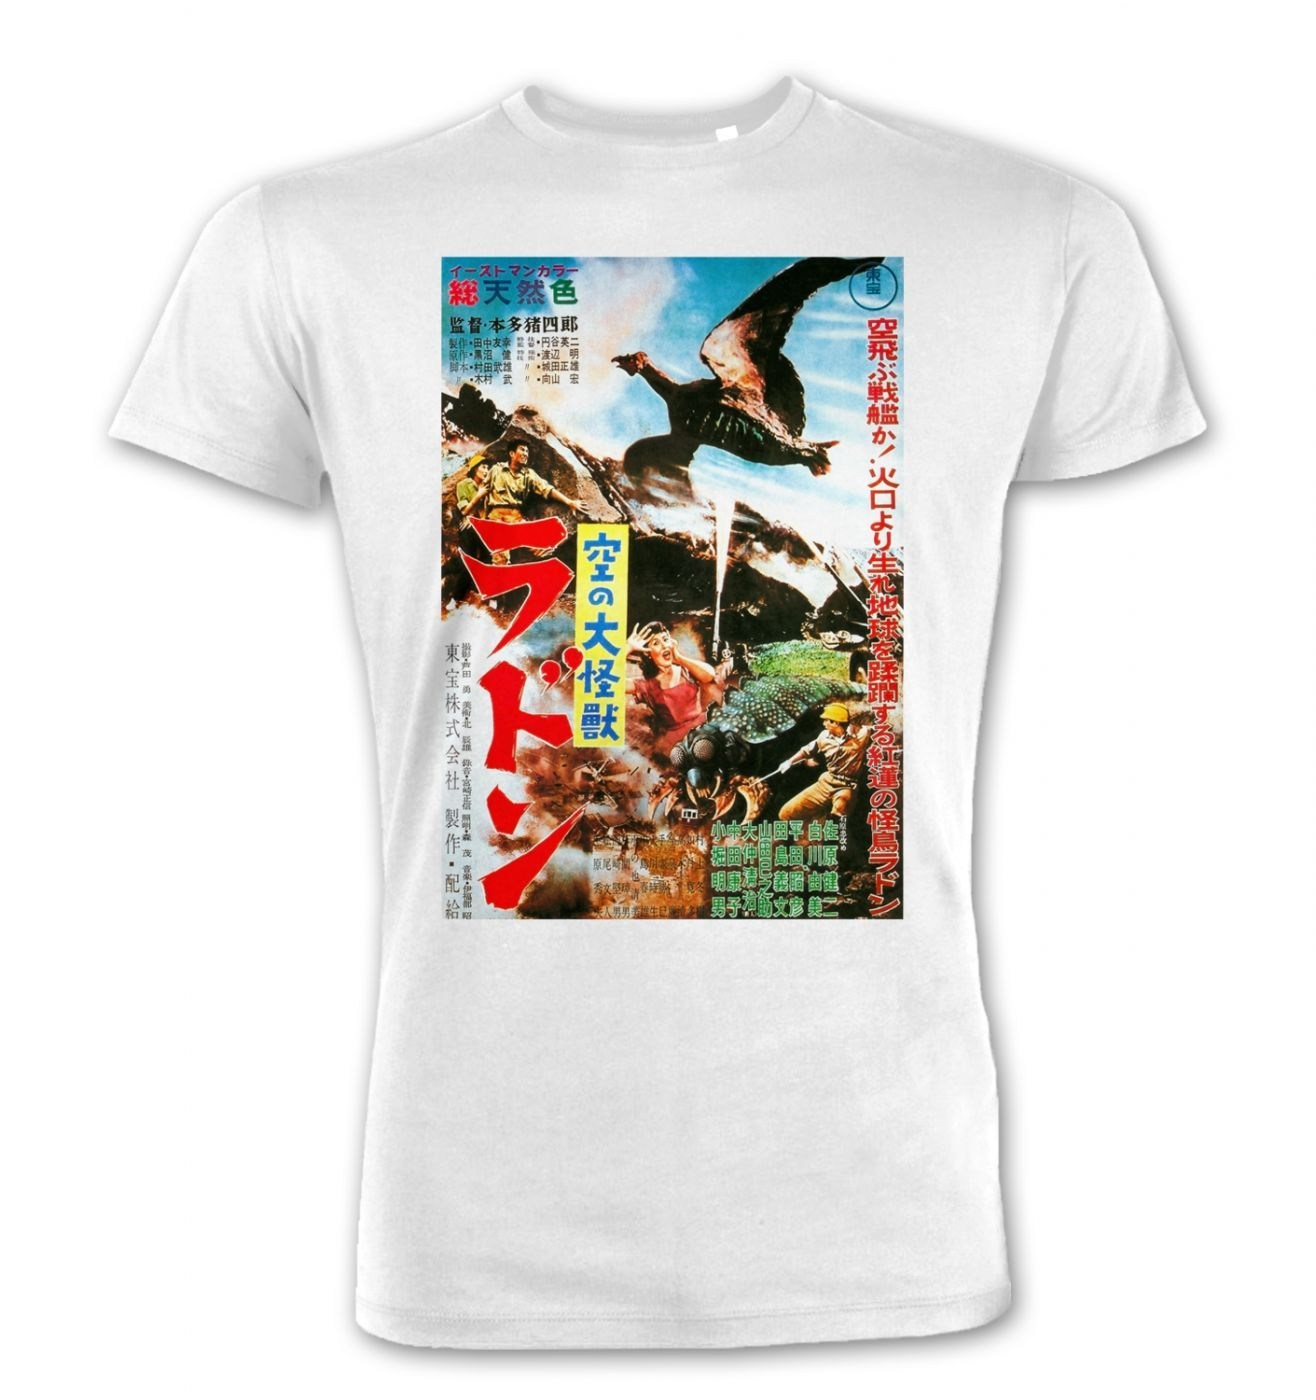 Rodan Flying Monster men's Premium t-shirt